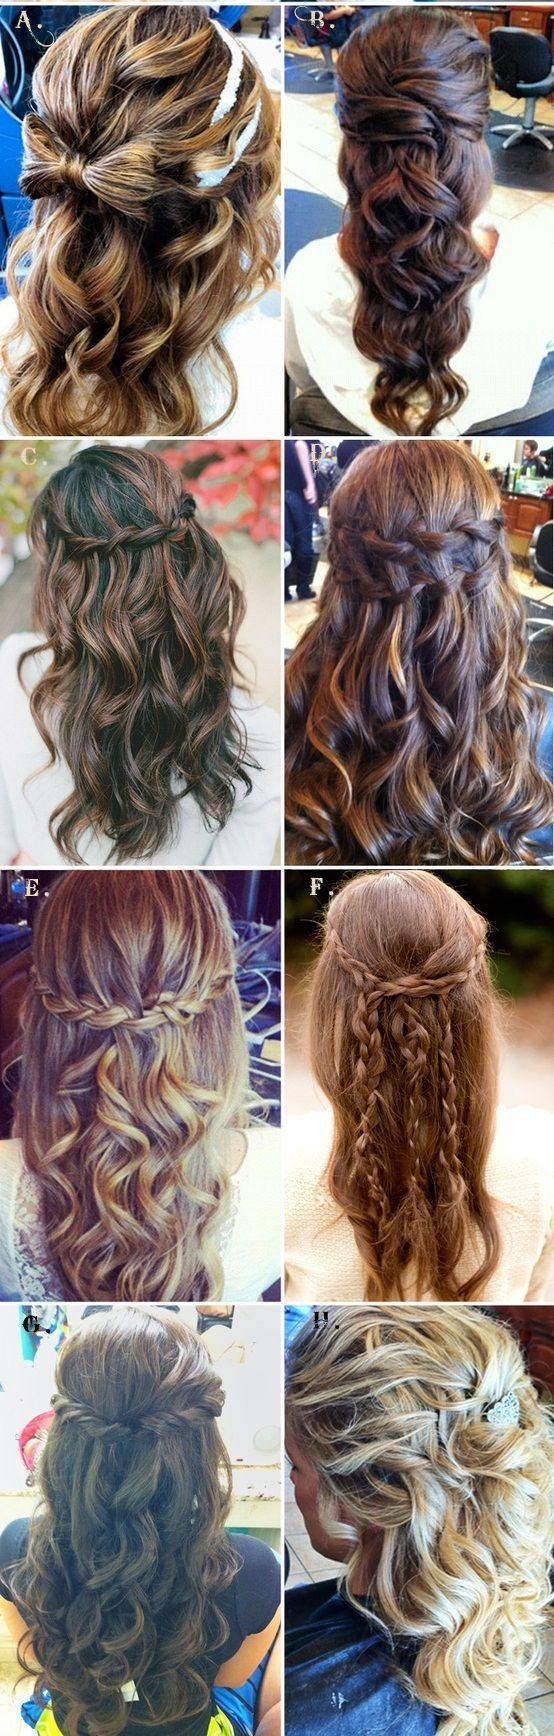 61 best images about Beach Wedding Hair Ideas on Pinterest | Starfish, Updo and Curls